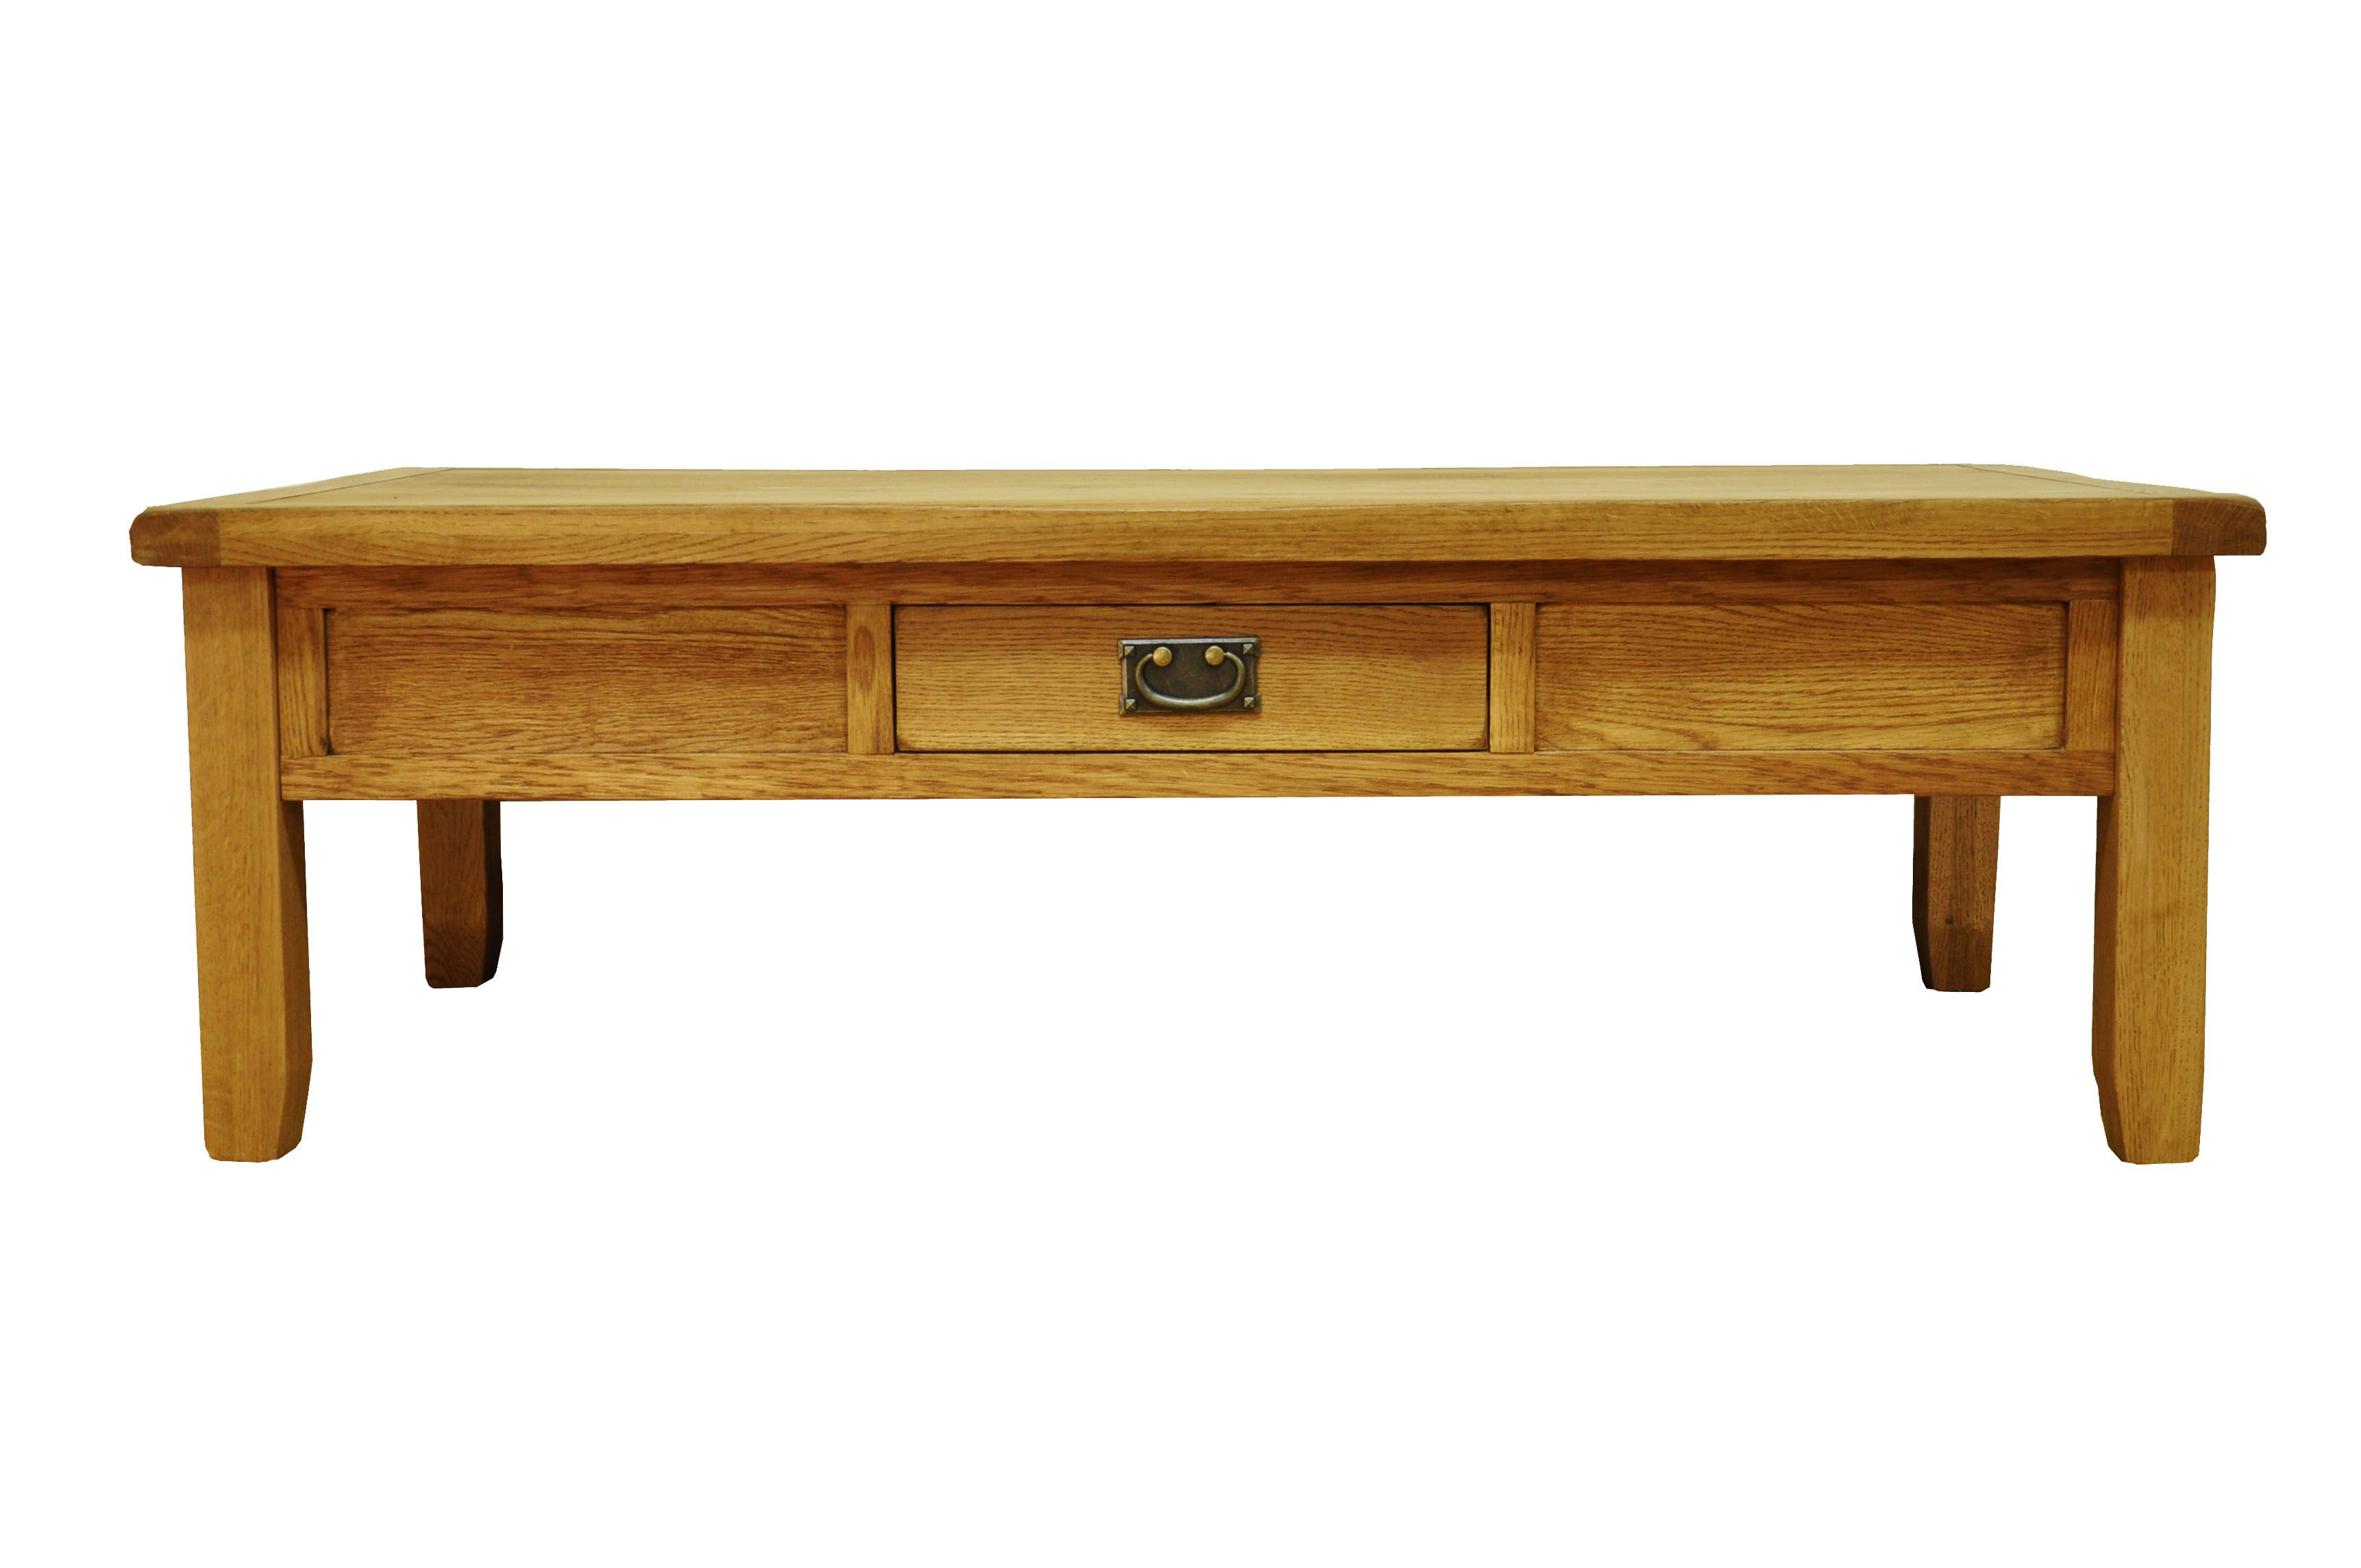 stylish contemporary shelf walnut ikea to storage plans special square table cl with oak coffee and furniture top drawer lifestyle affordable lift related topic uk drawers material npd